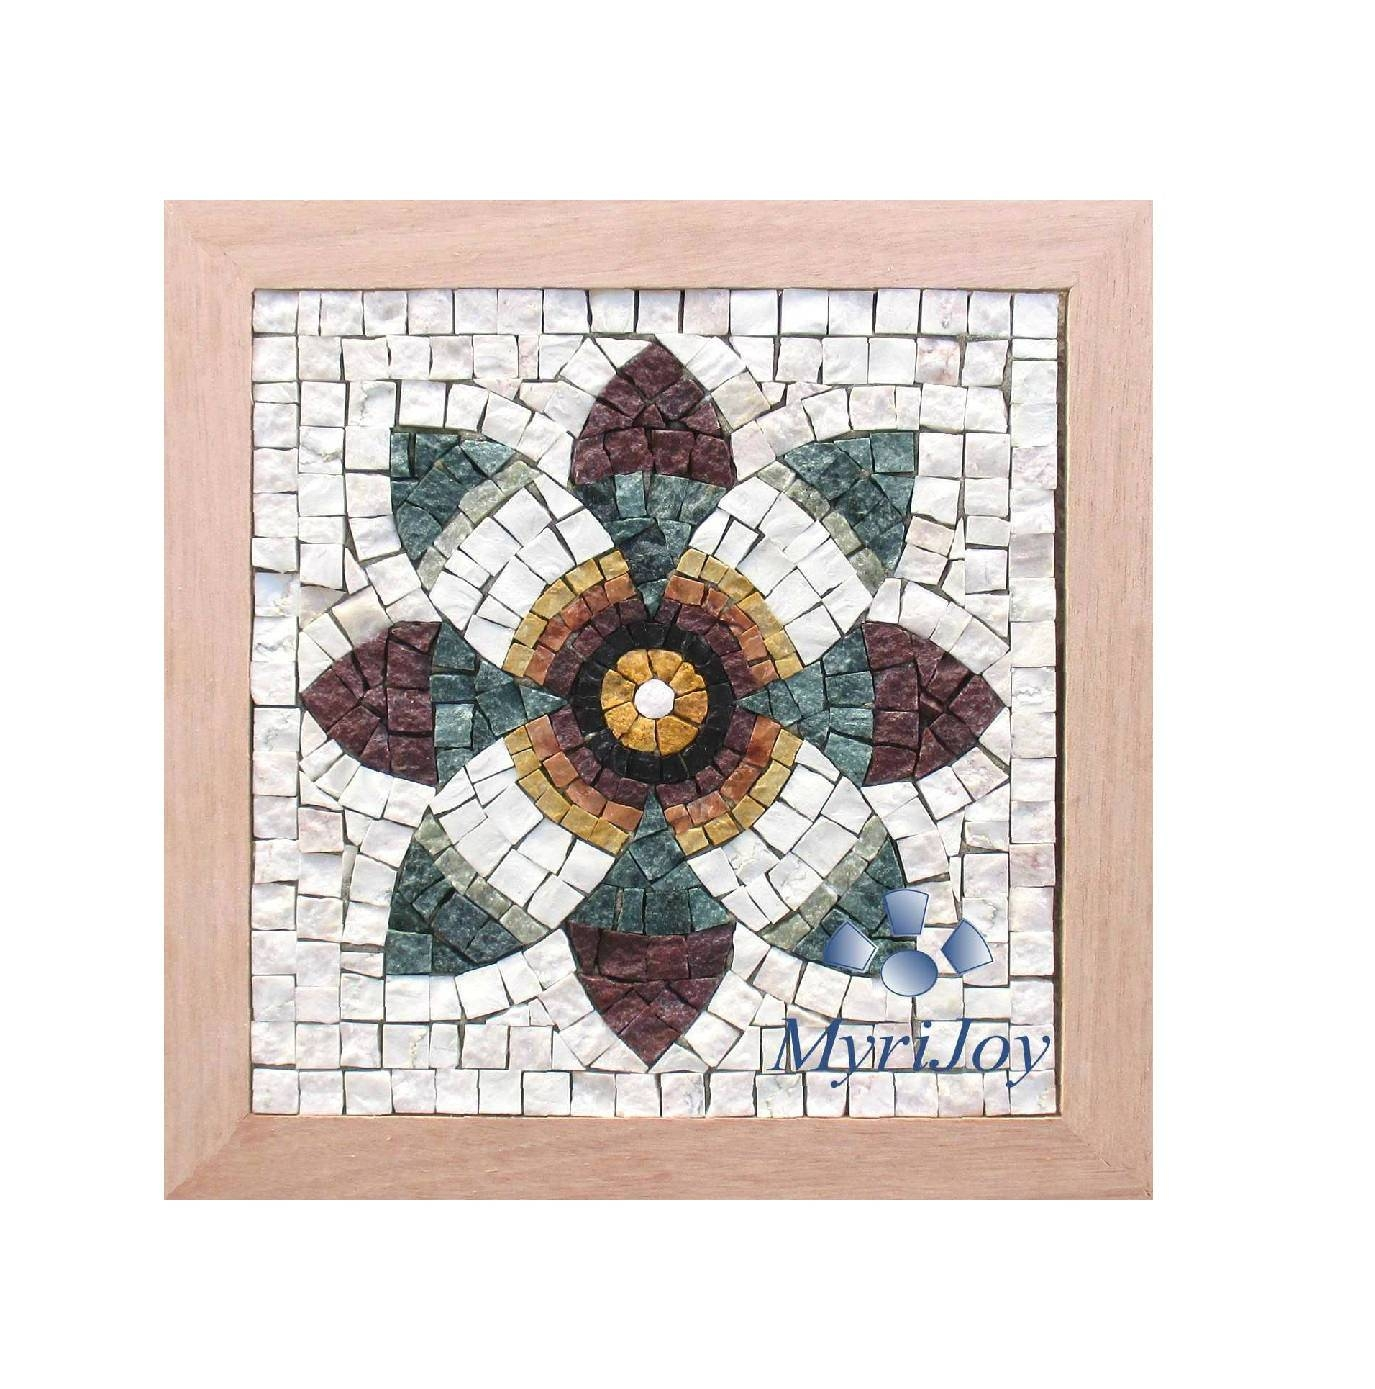 Diy Roman Mosaics Kit For Adults Pomegranate Flower Marble Mosaic Intended For Most Recent Mosaic Art Kits For Adults (View 12 of 20)